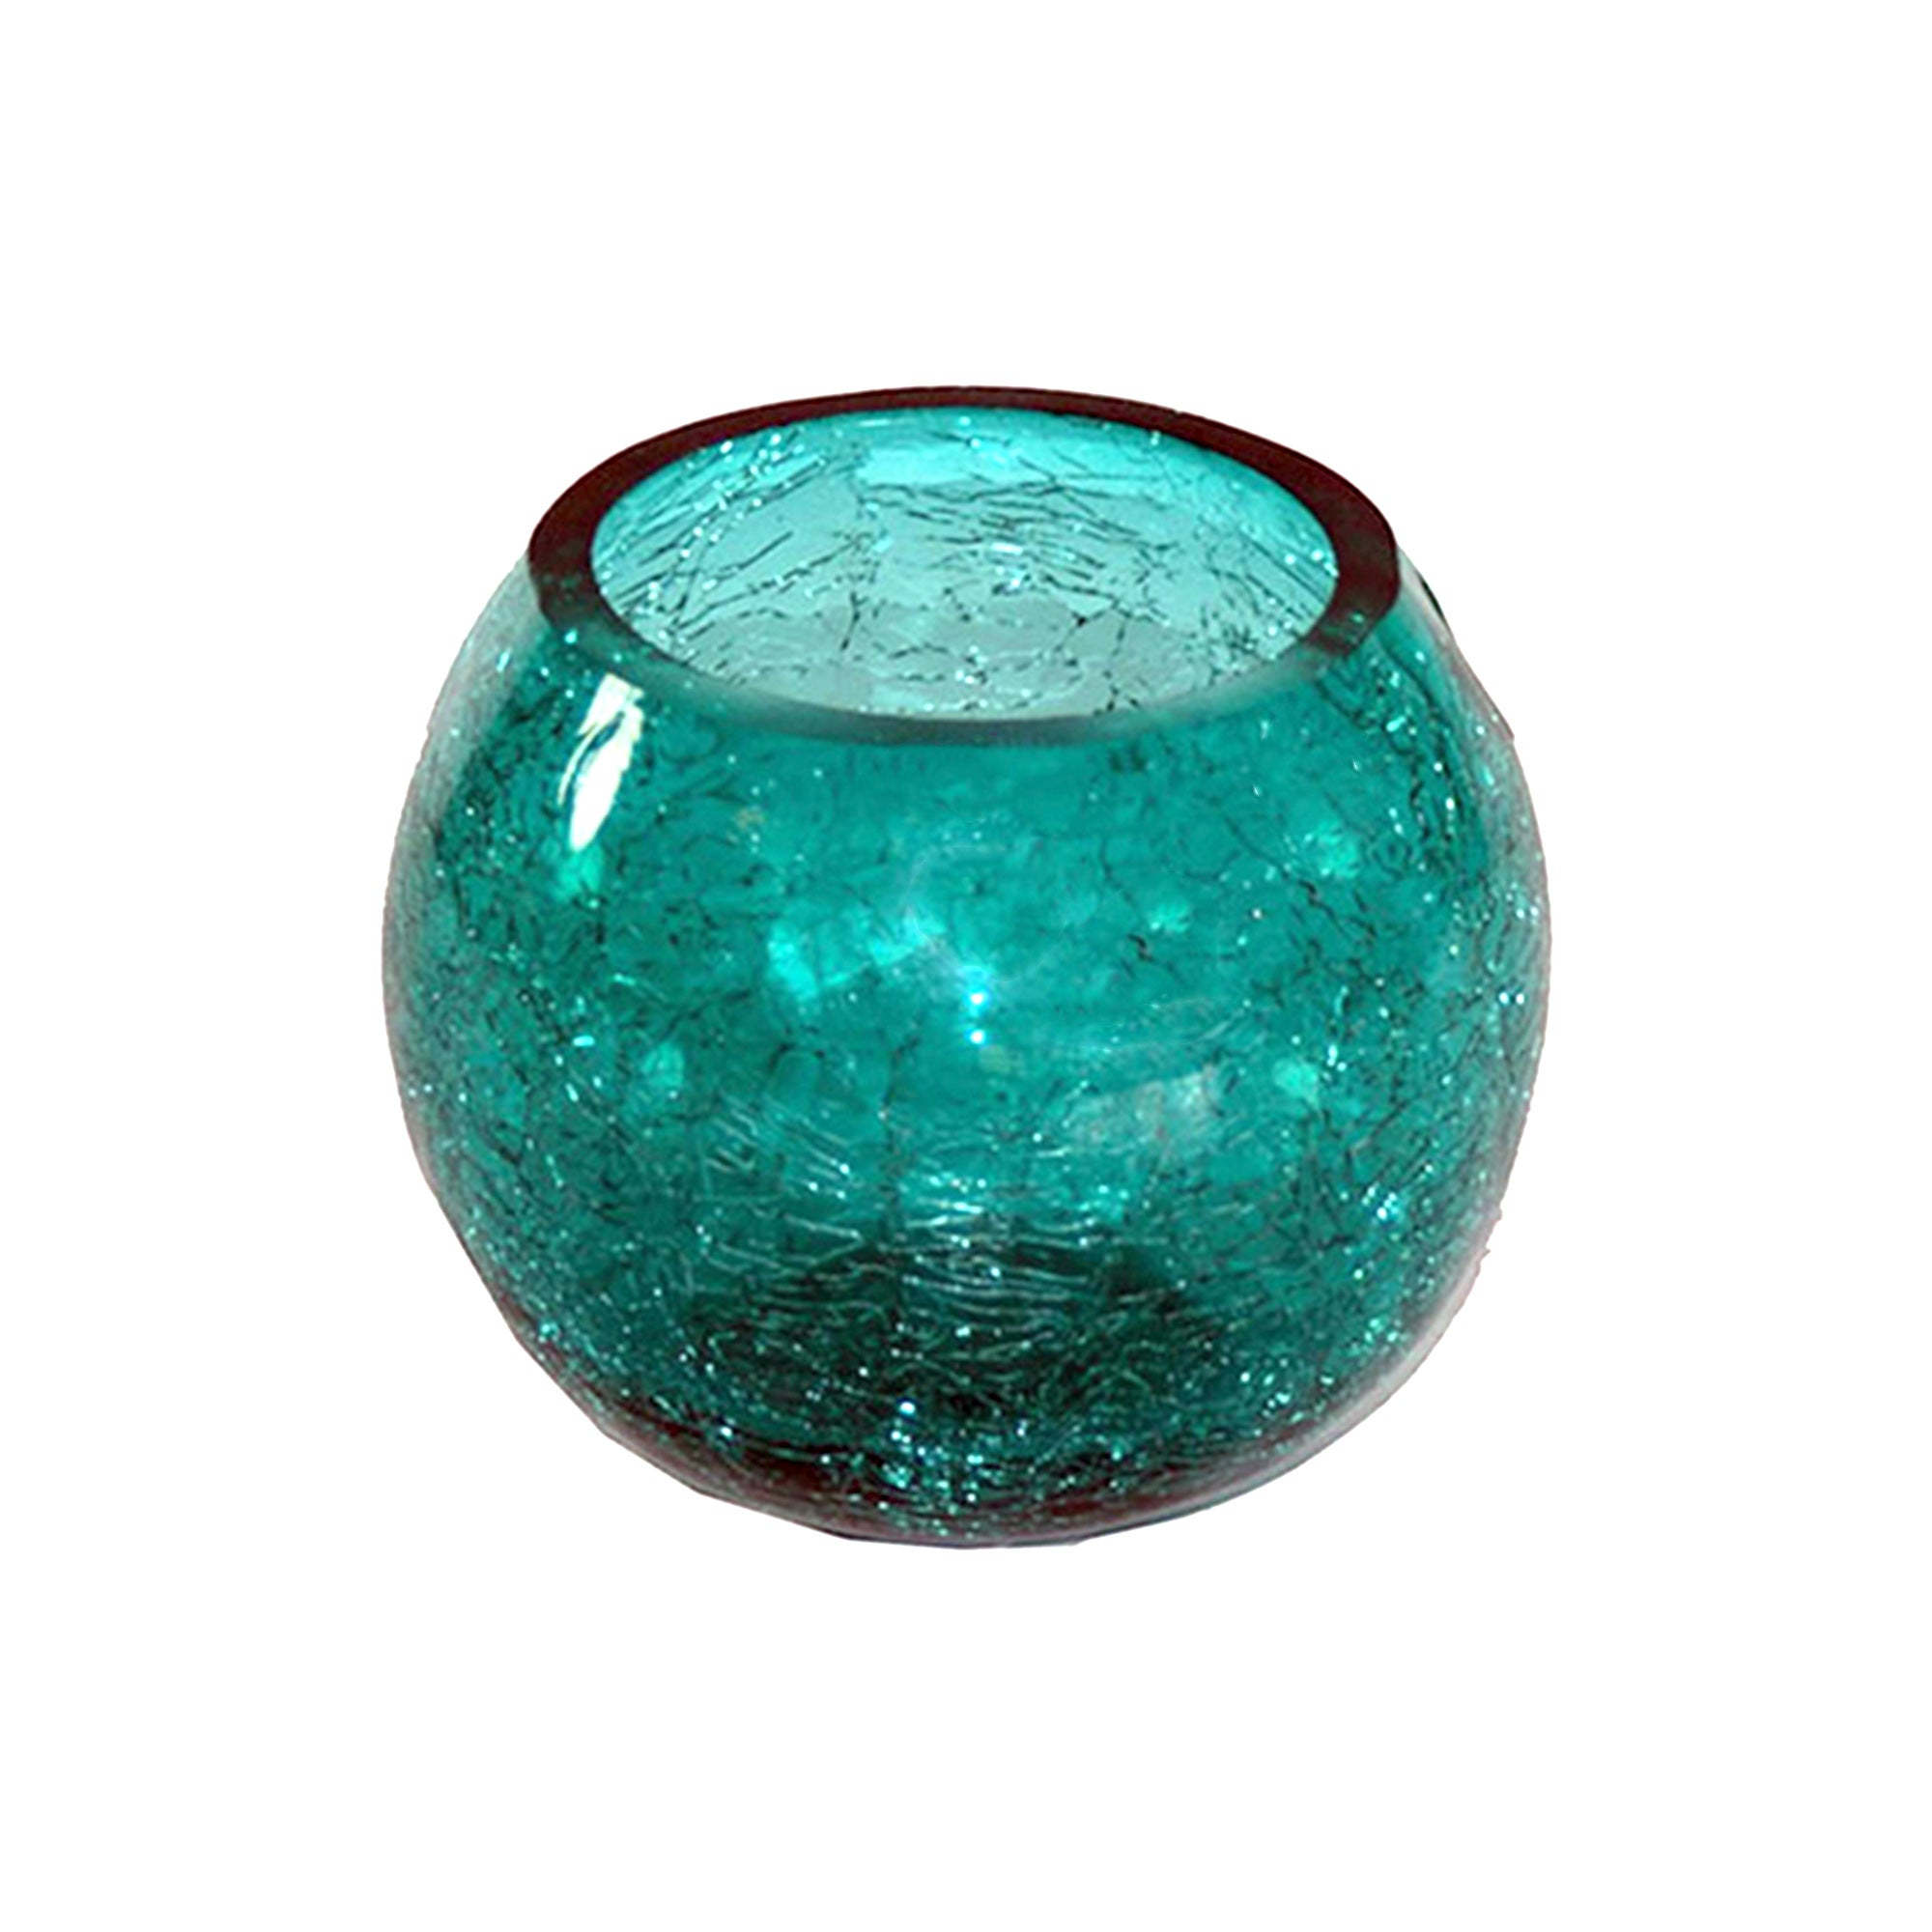 Teal Crackle Glass Collection Round Bowl